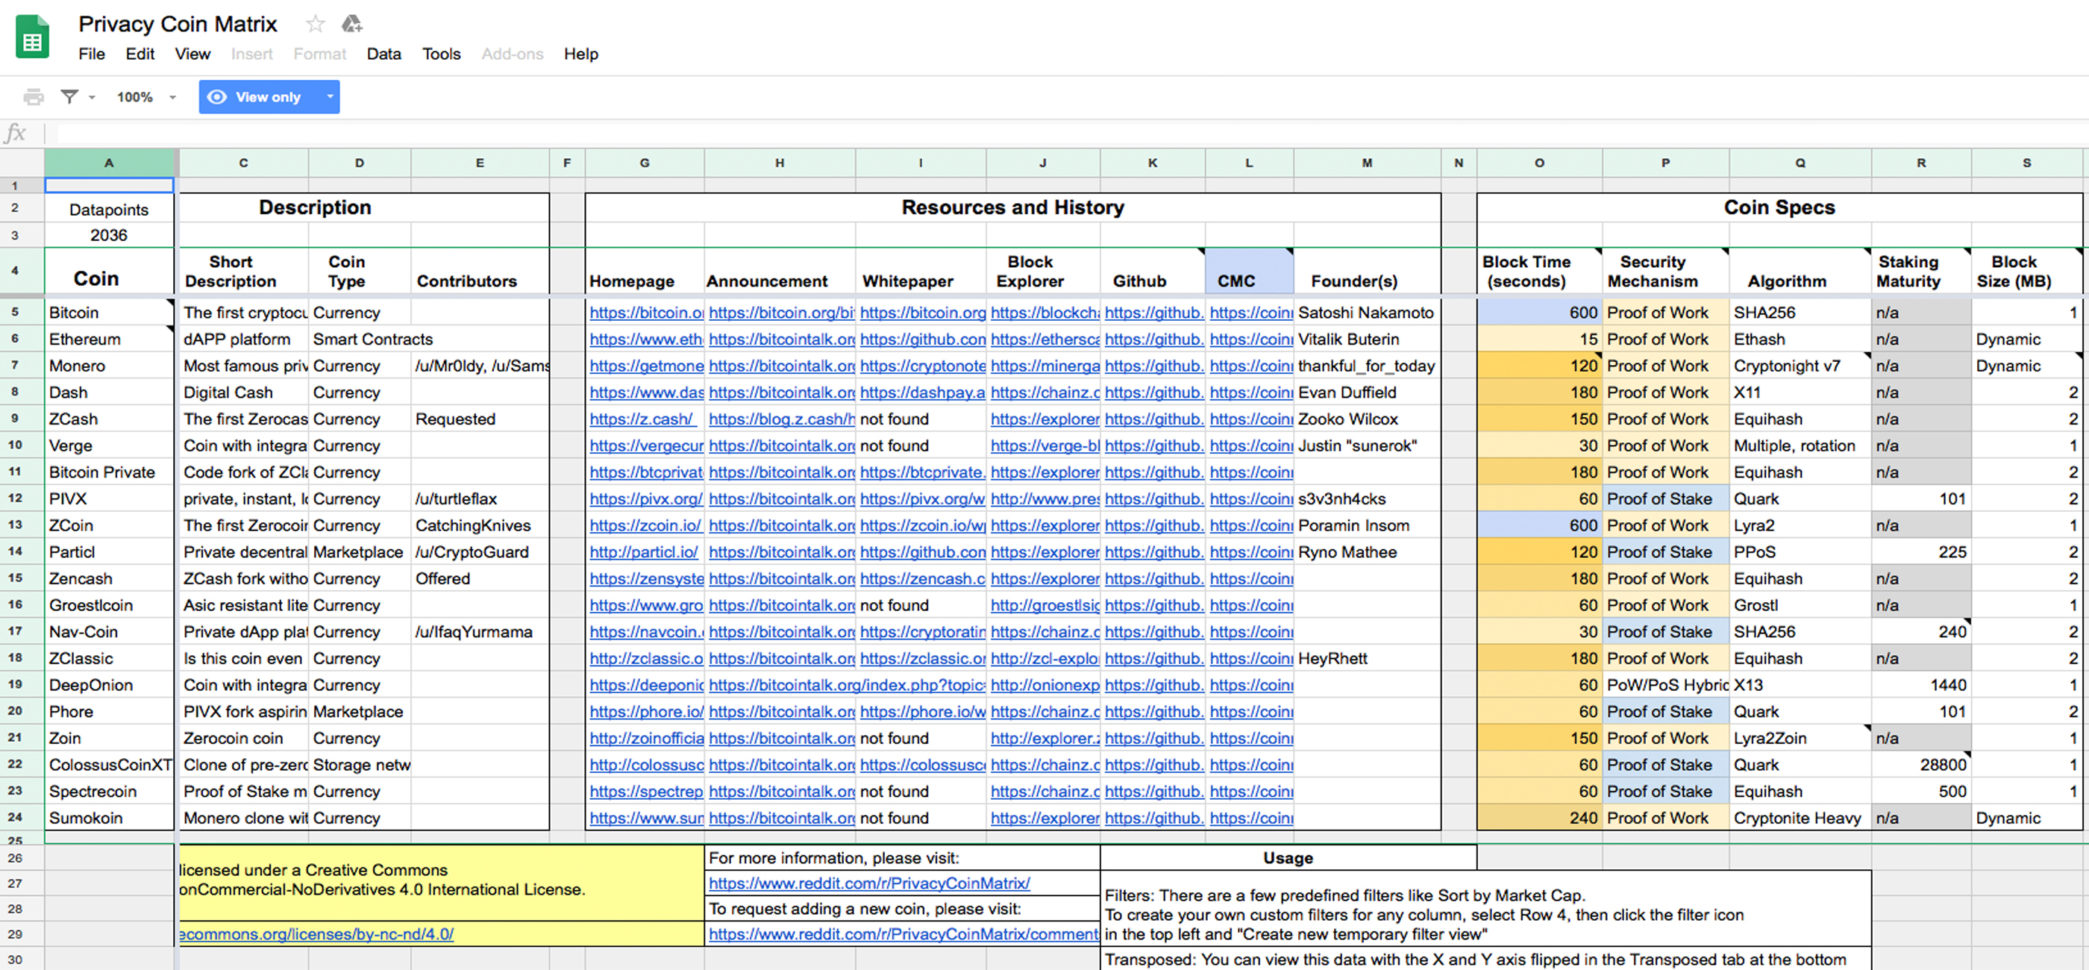 Divorce Asset Spreadsheet Intended For The Privacy Coin Matrix: A Comprehensive Spreadsheet Of Anonymous